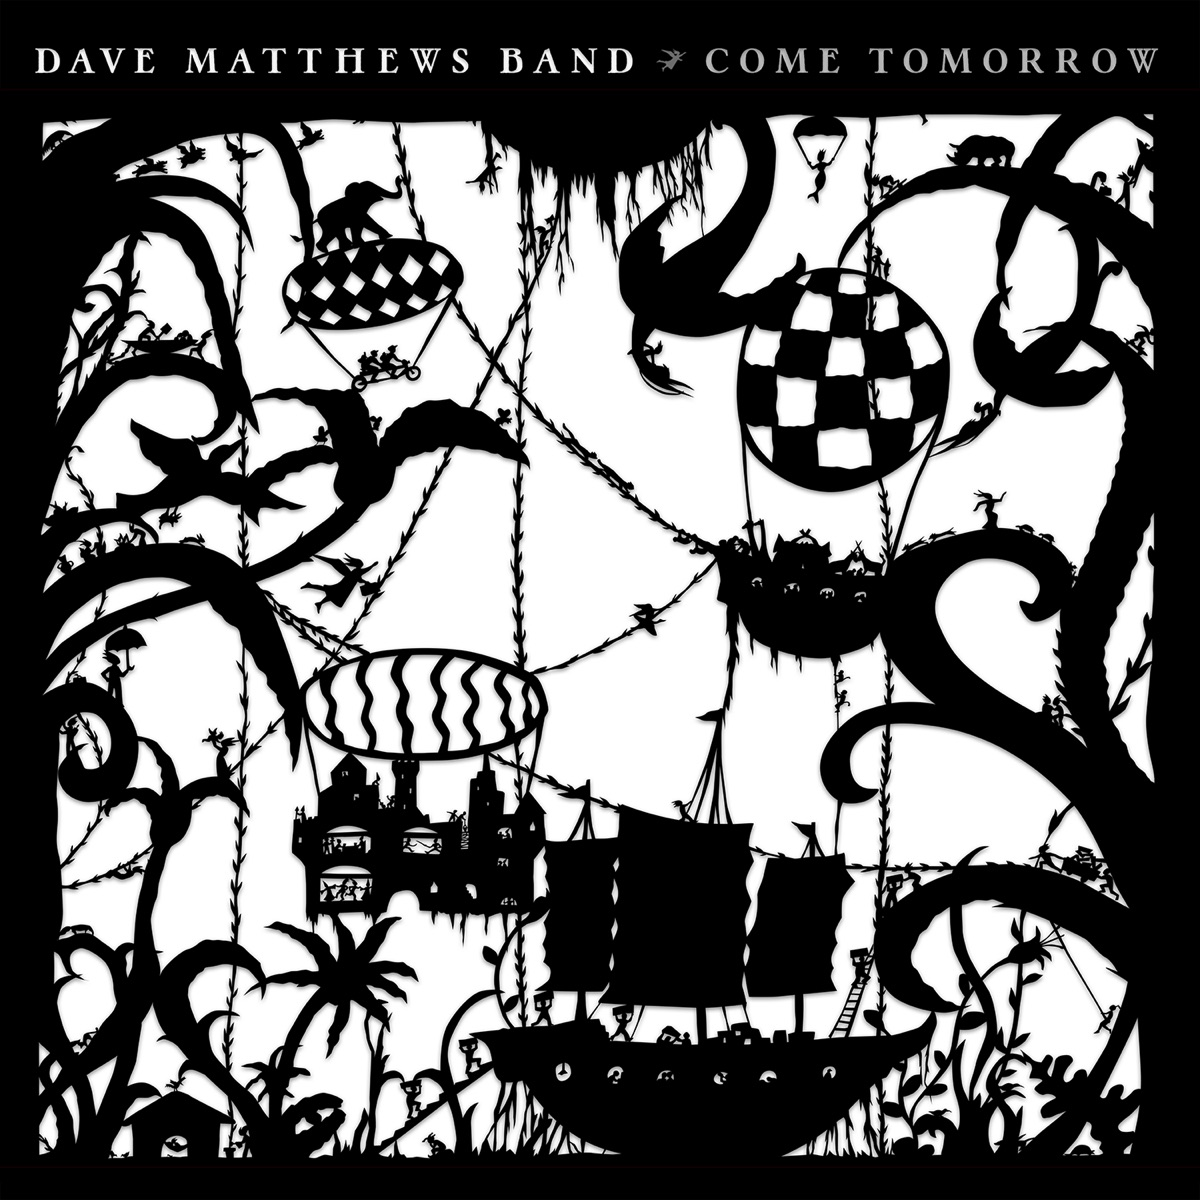 Come Tomorrow Album Cover by Dave Matthews Band